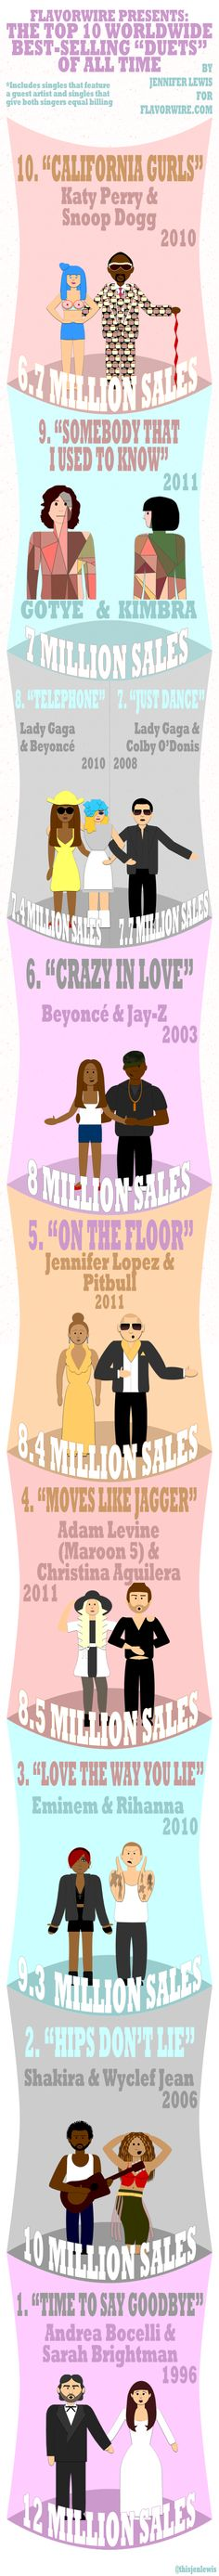 Best Selling Duets of....ever. #1 surprises me!